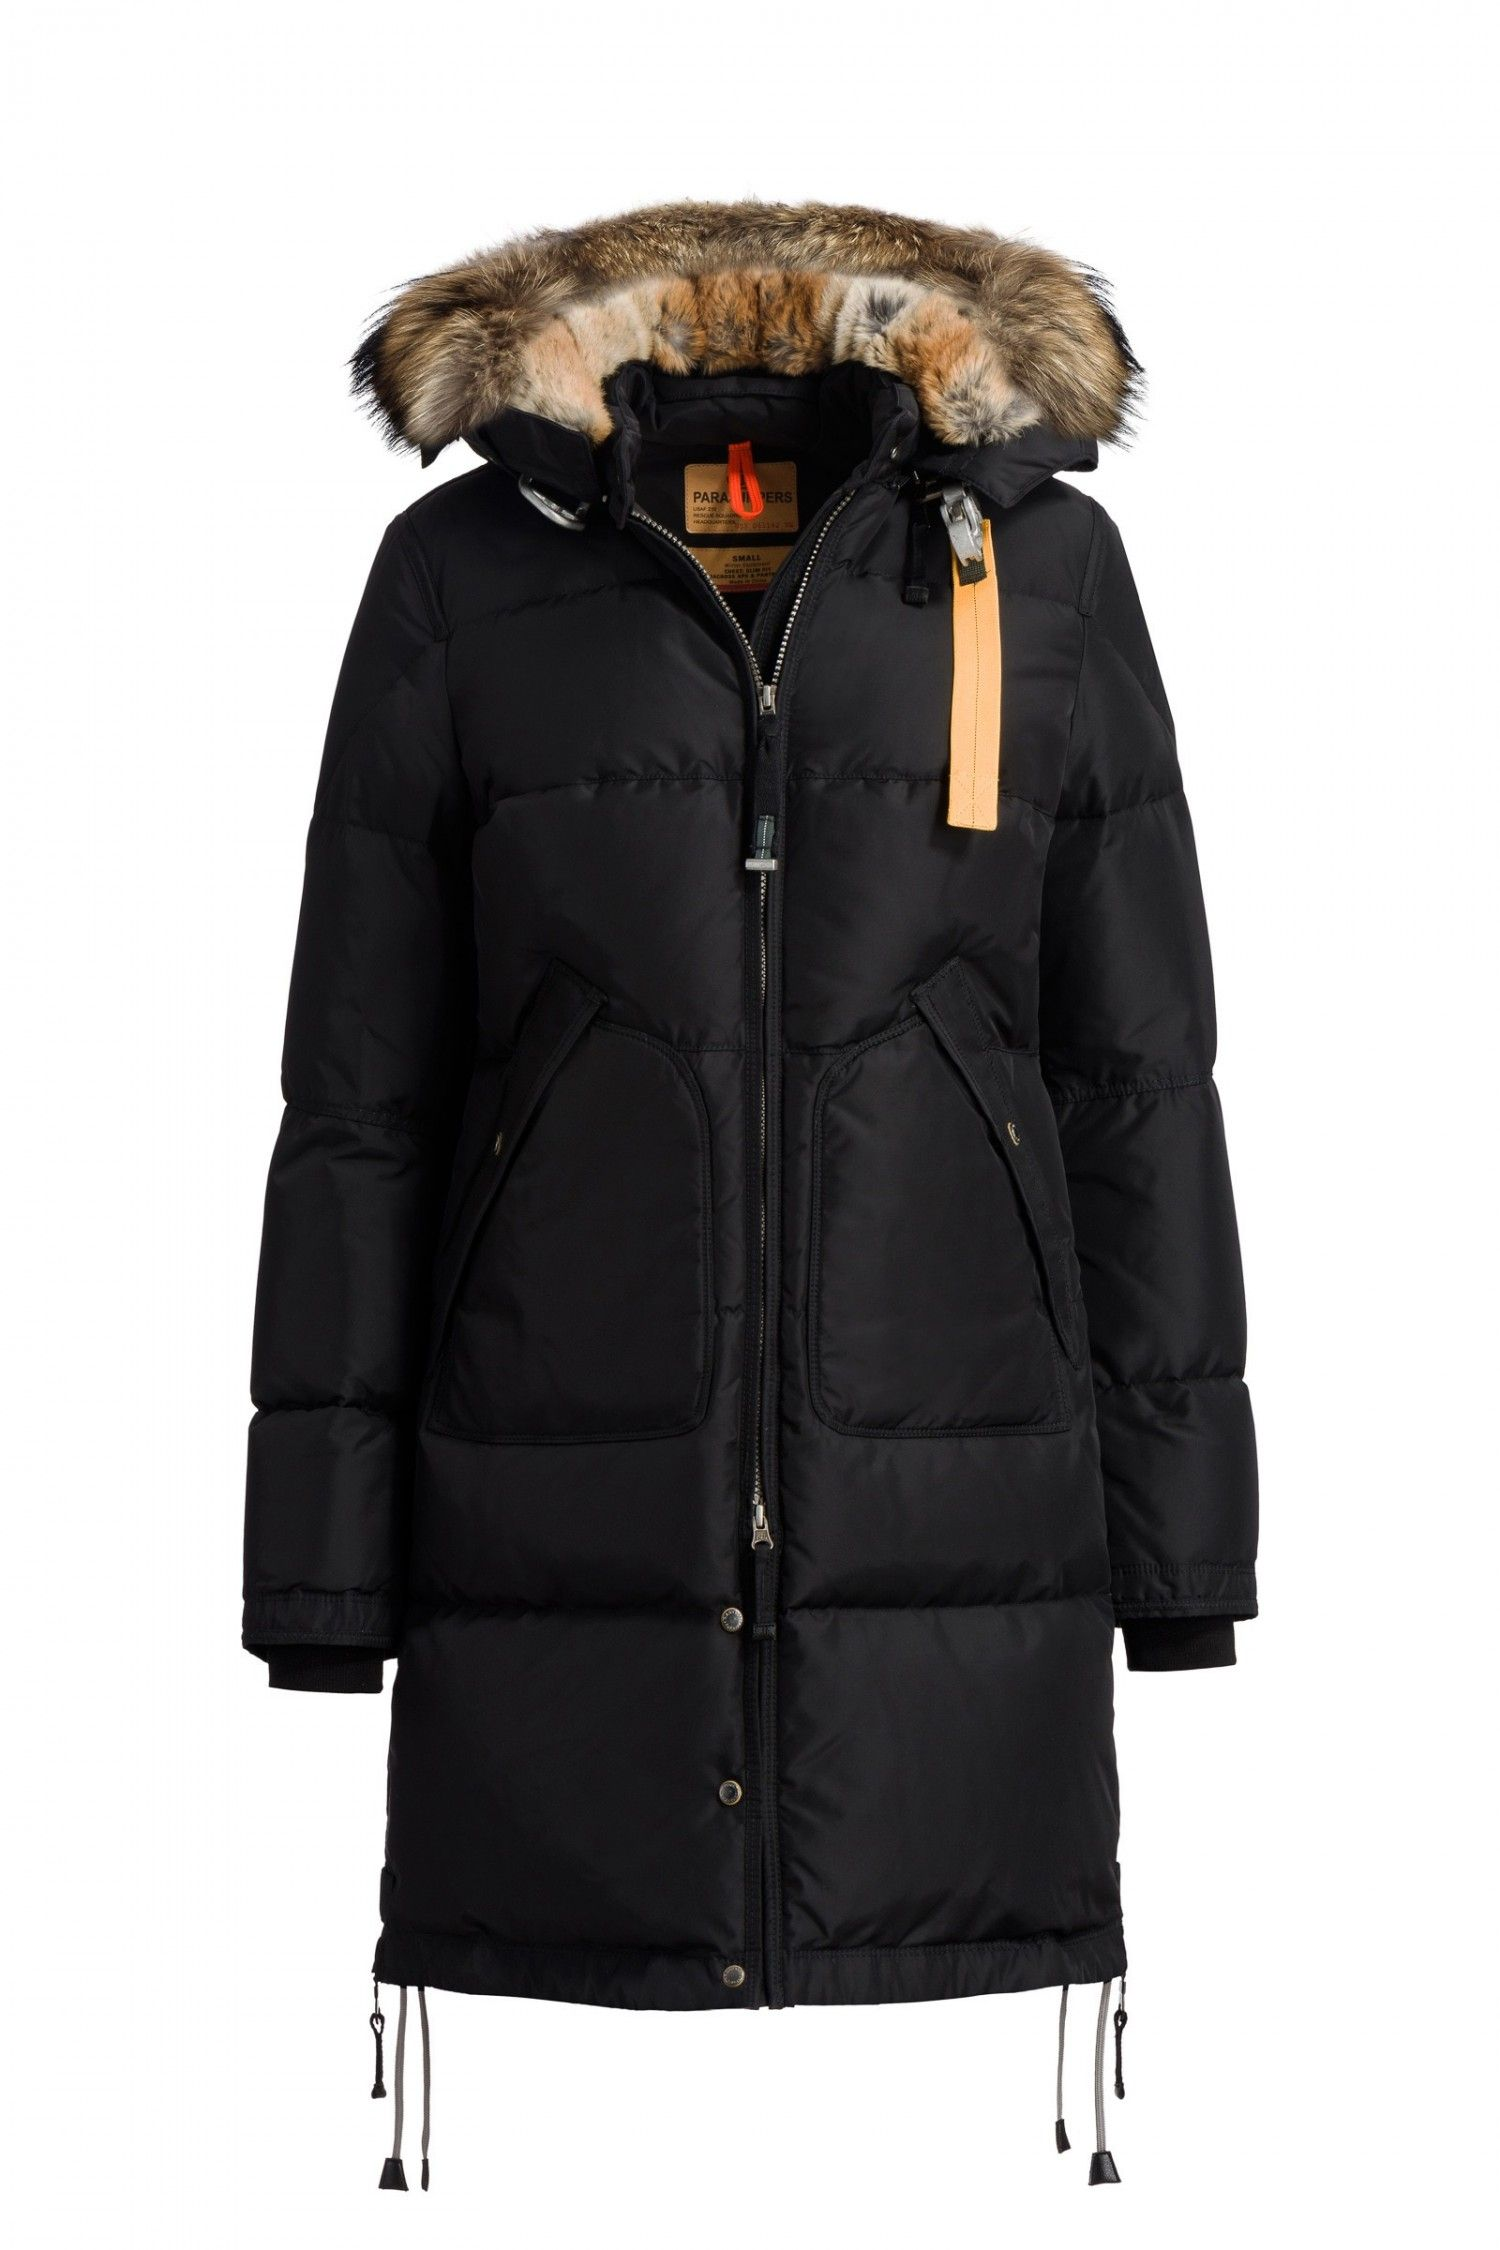 parajumpers jas, parajumpers outlet, parajumpers sale,Parajumpers Vrouw Long Bear Masterpiece Zwart